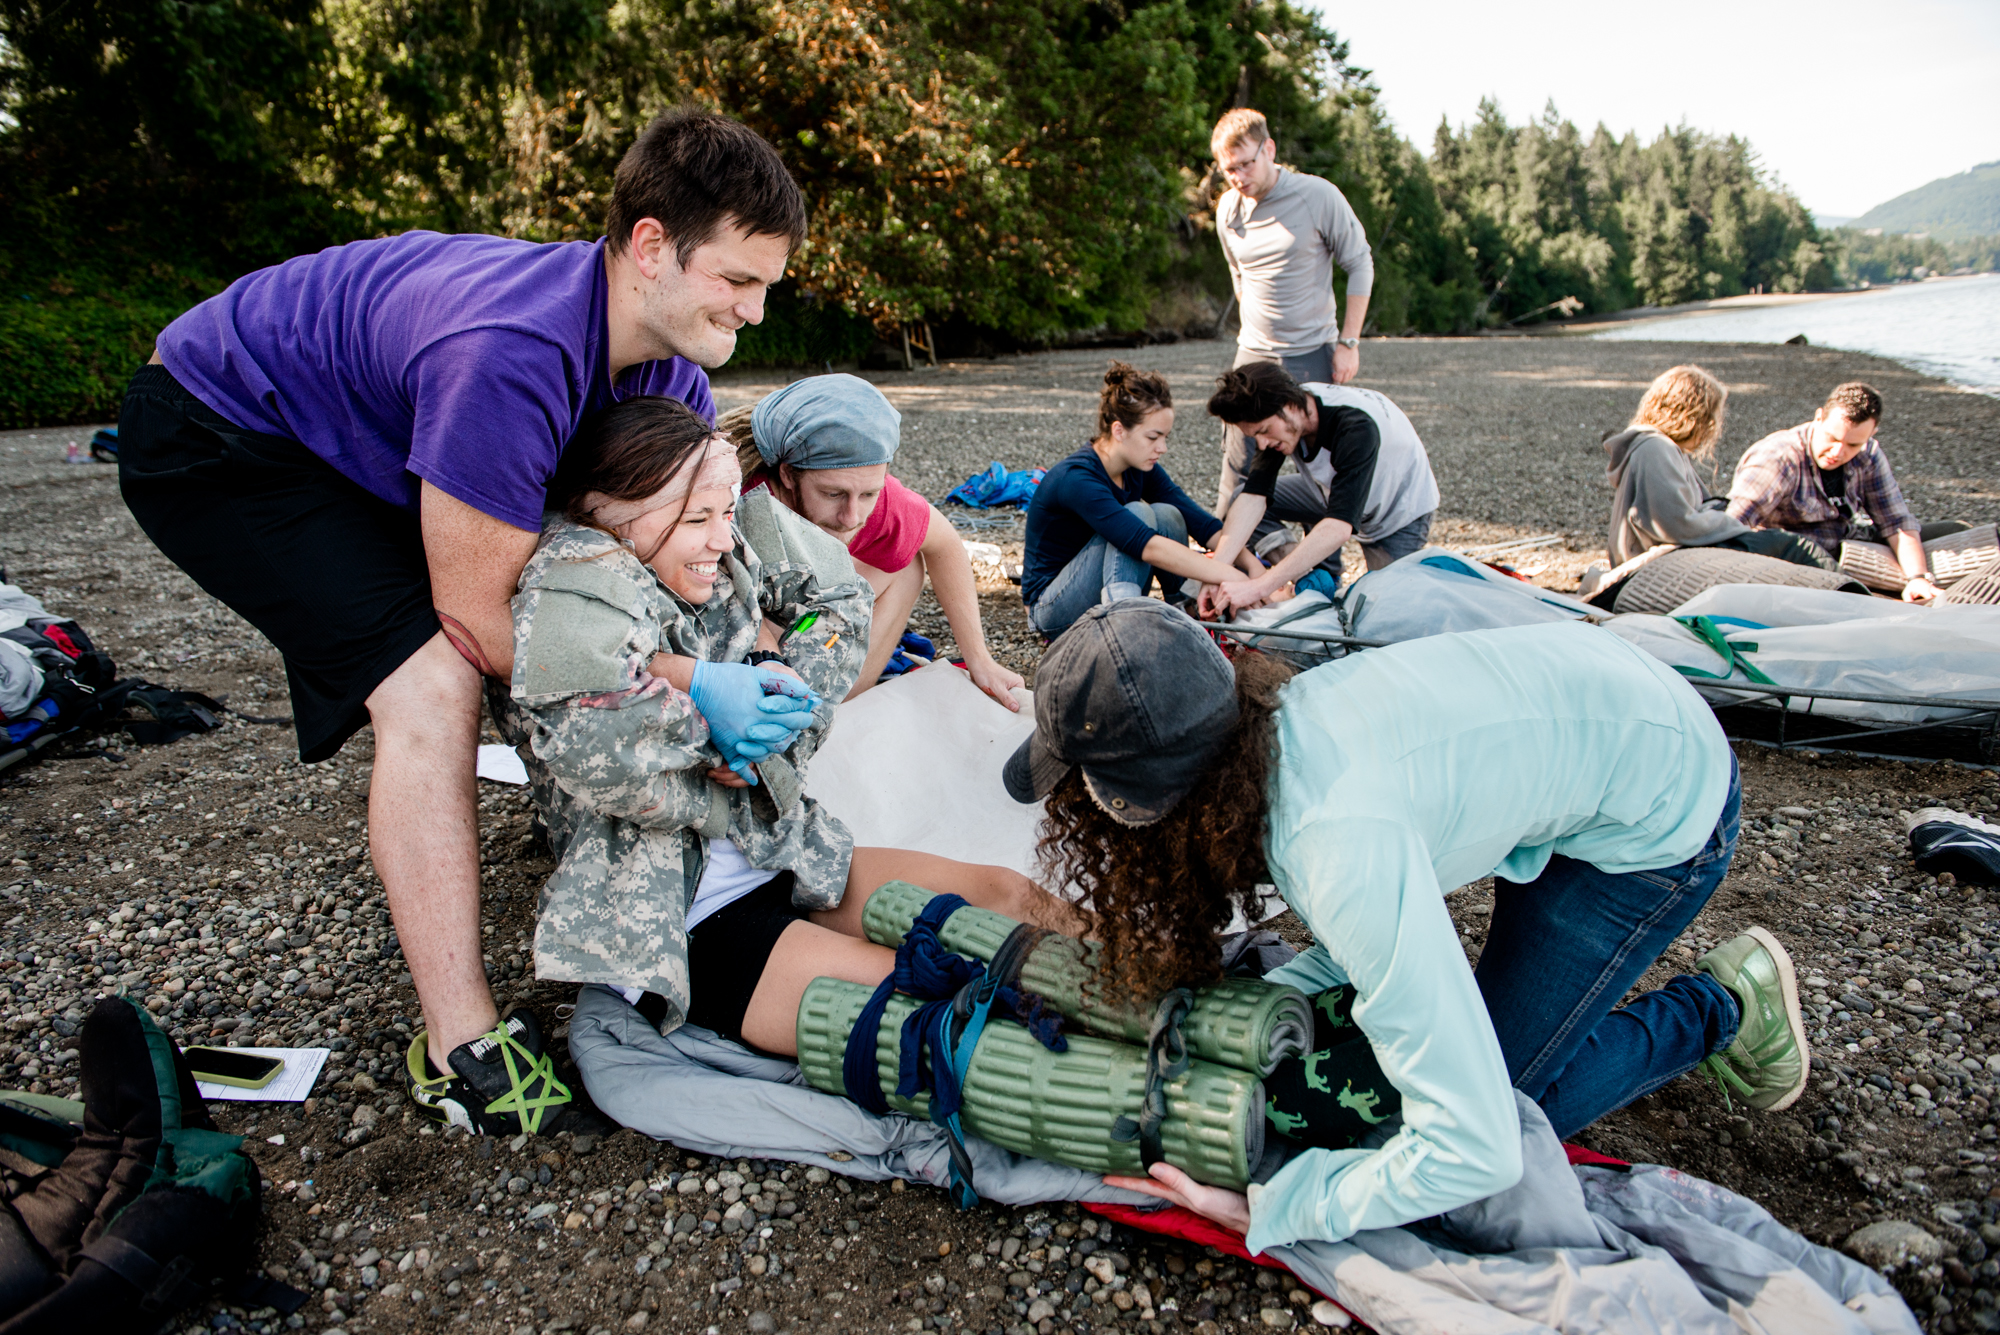 A team of responders prepare to do a princess carry for a student with a simulated leg injury. -- Shauna Bittle photo